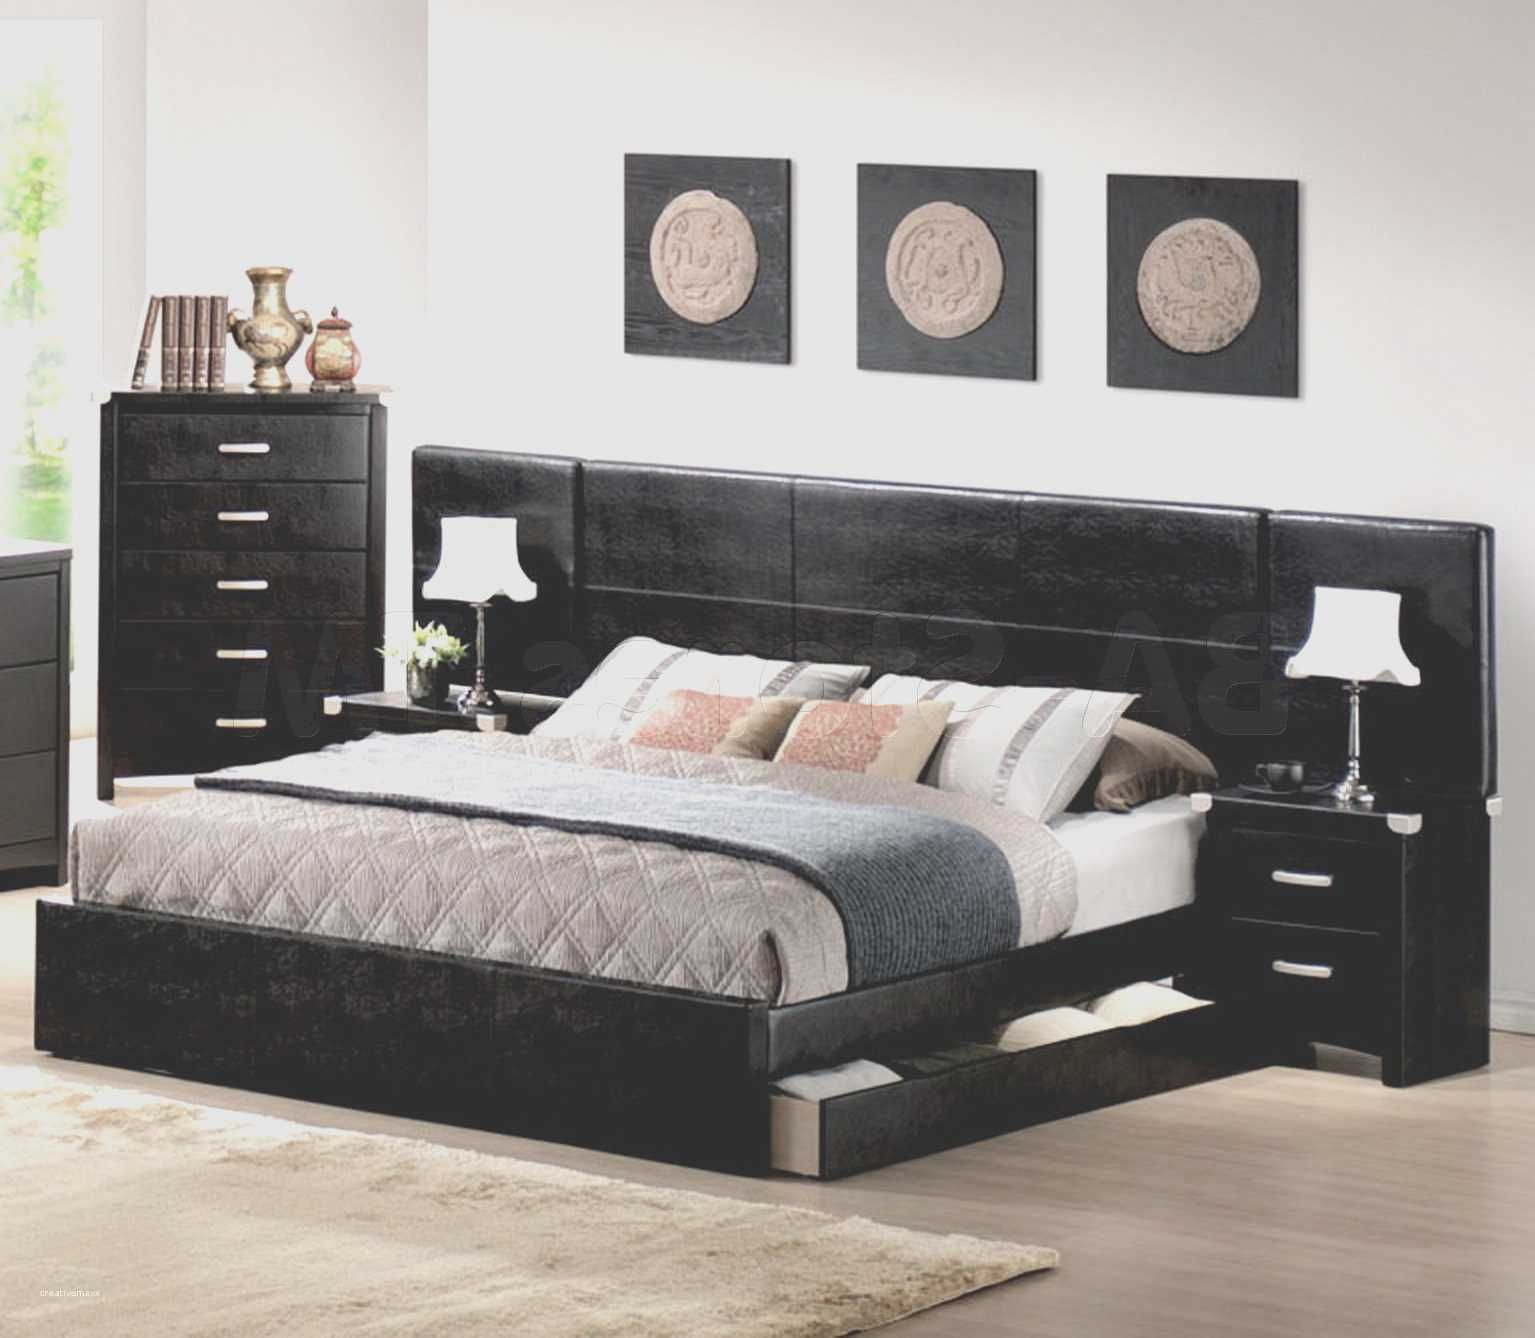 New Design Bedroom Furniture 6 Contemporary Bedroom Furniture